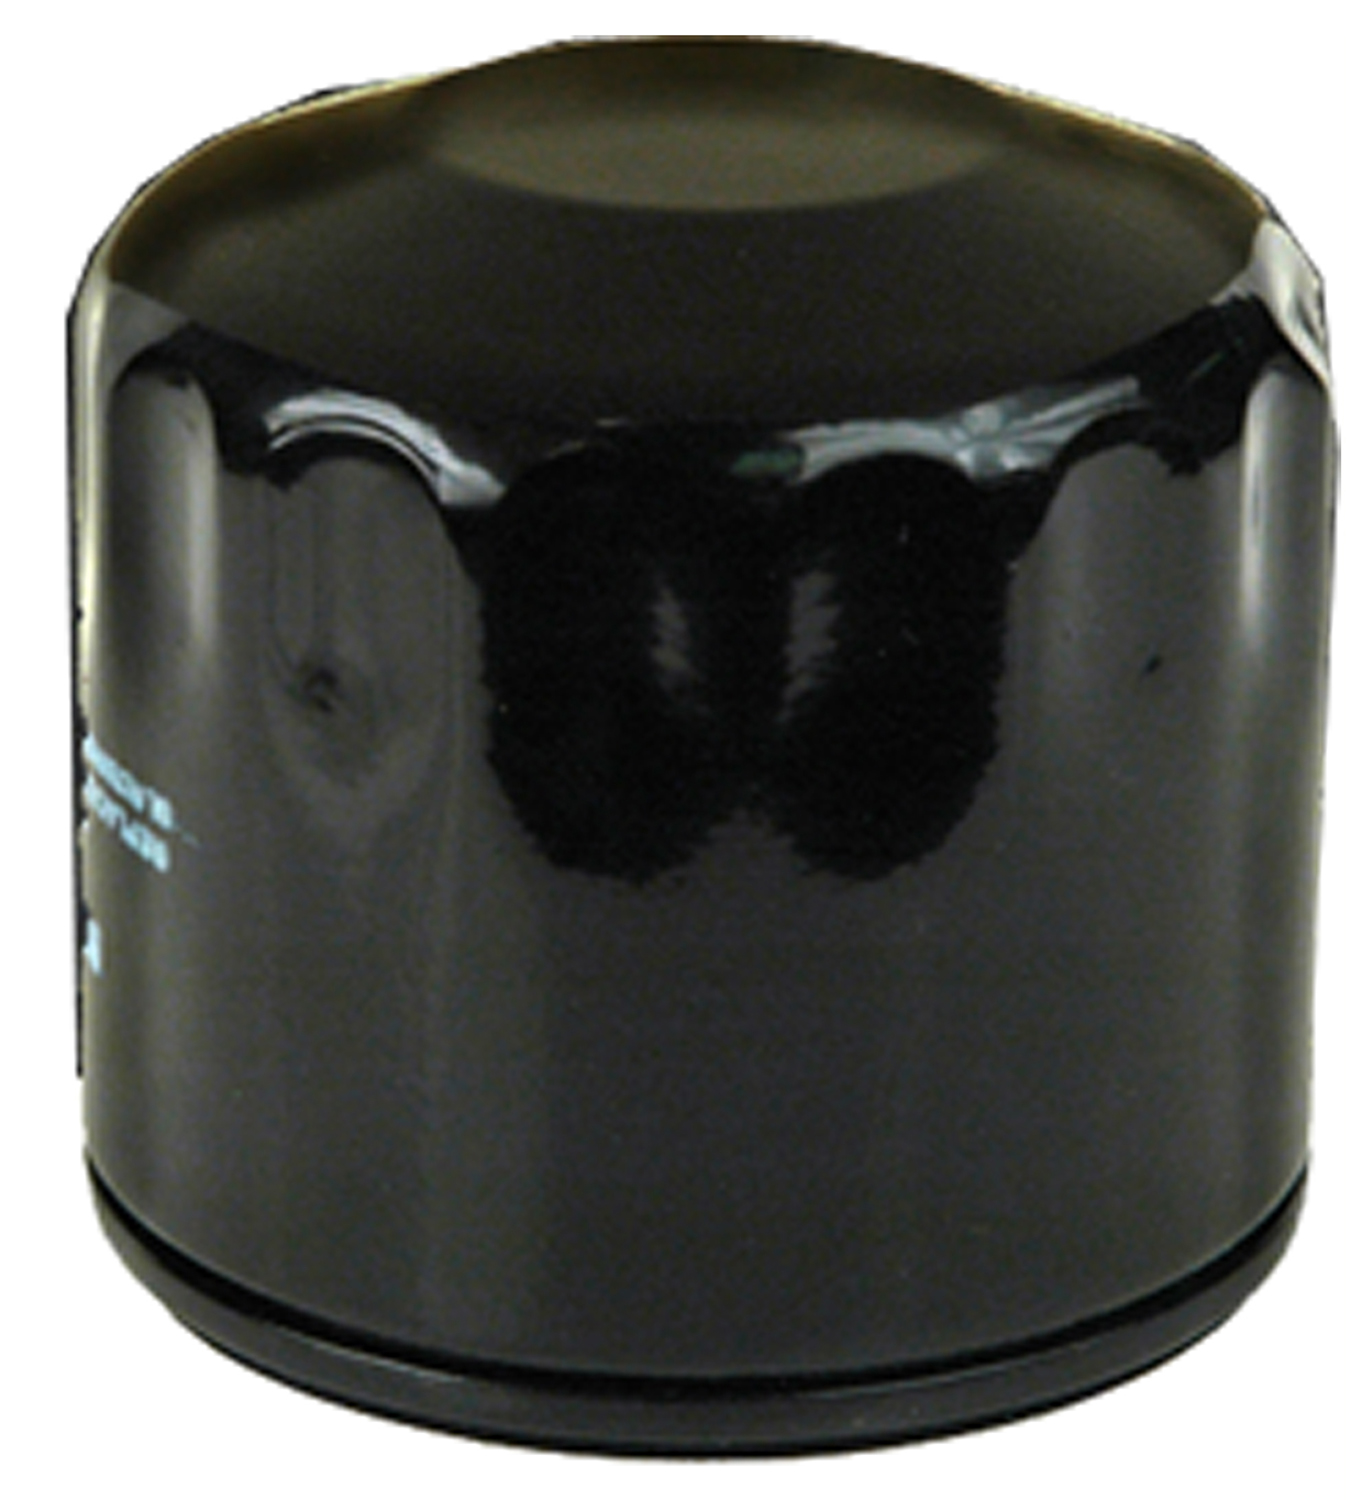 MaxPower 334292 Oil Filter for Briggs & Stratton Engines Replaces OEM #492932, 696854, 5049K and Others